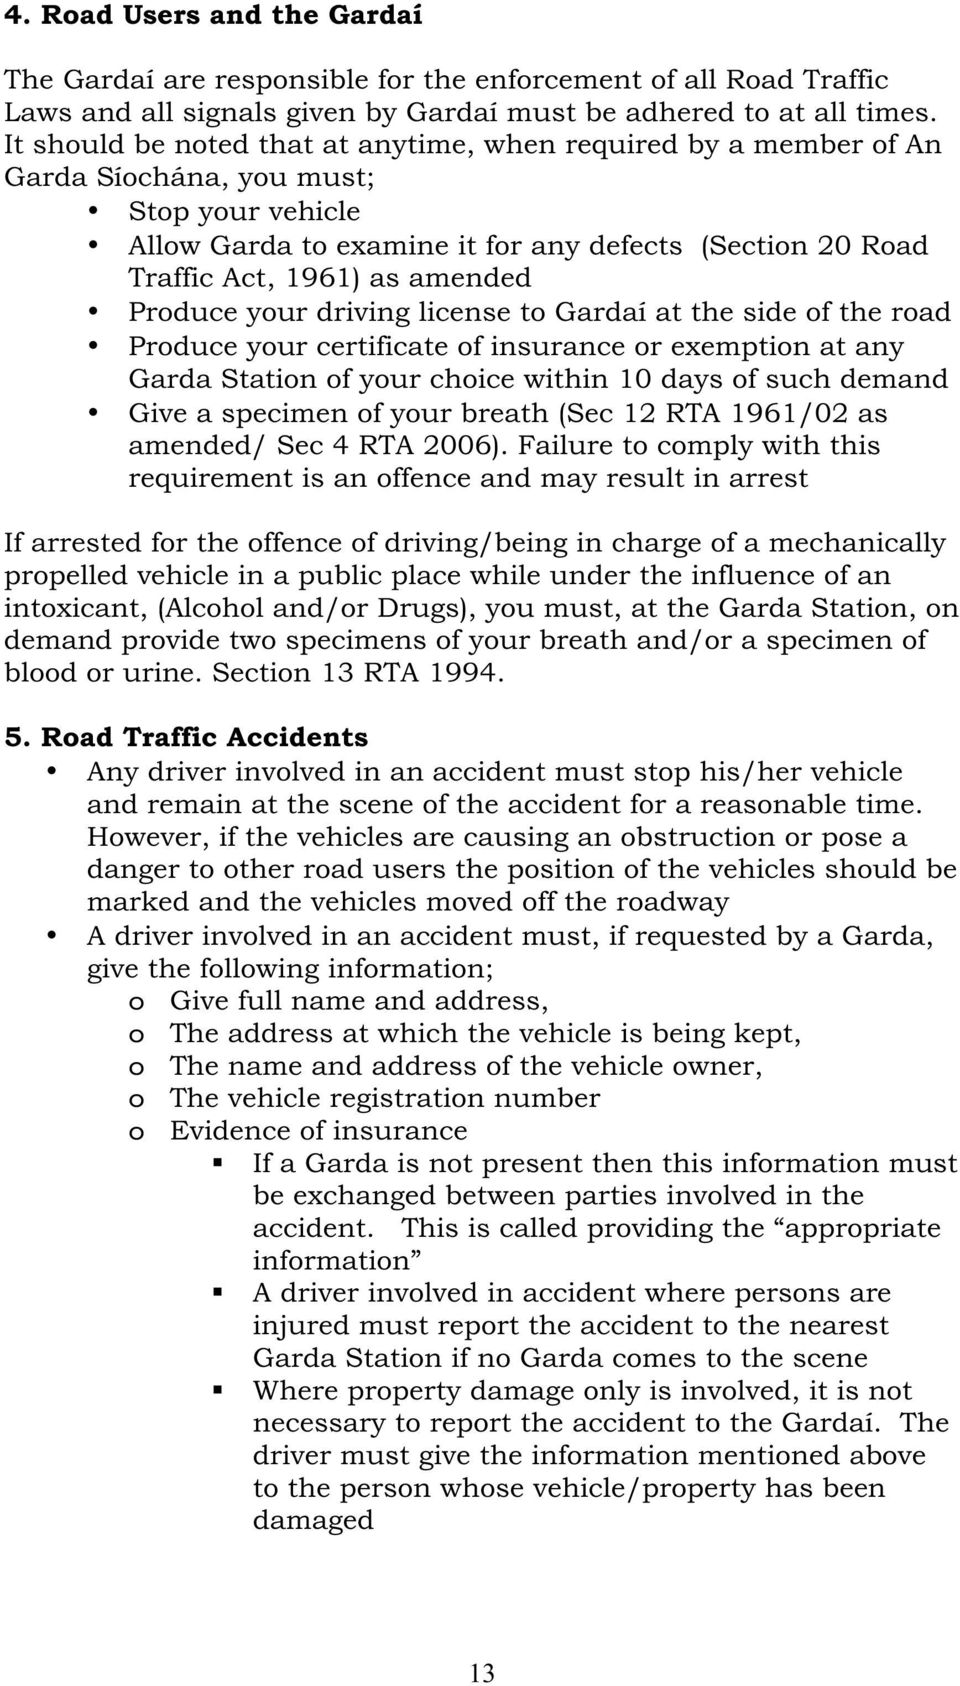 amended Produce your driving license to Gardaí at the side of the road Produce your certificate of insurance or exemption at any Garda Station of your choice within 10 days of such demand Give a